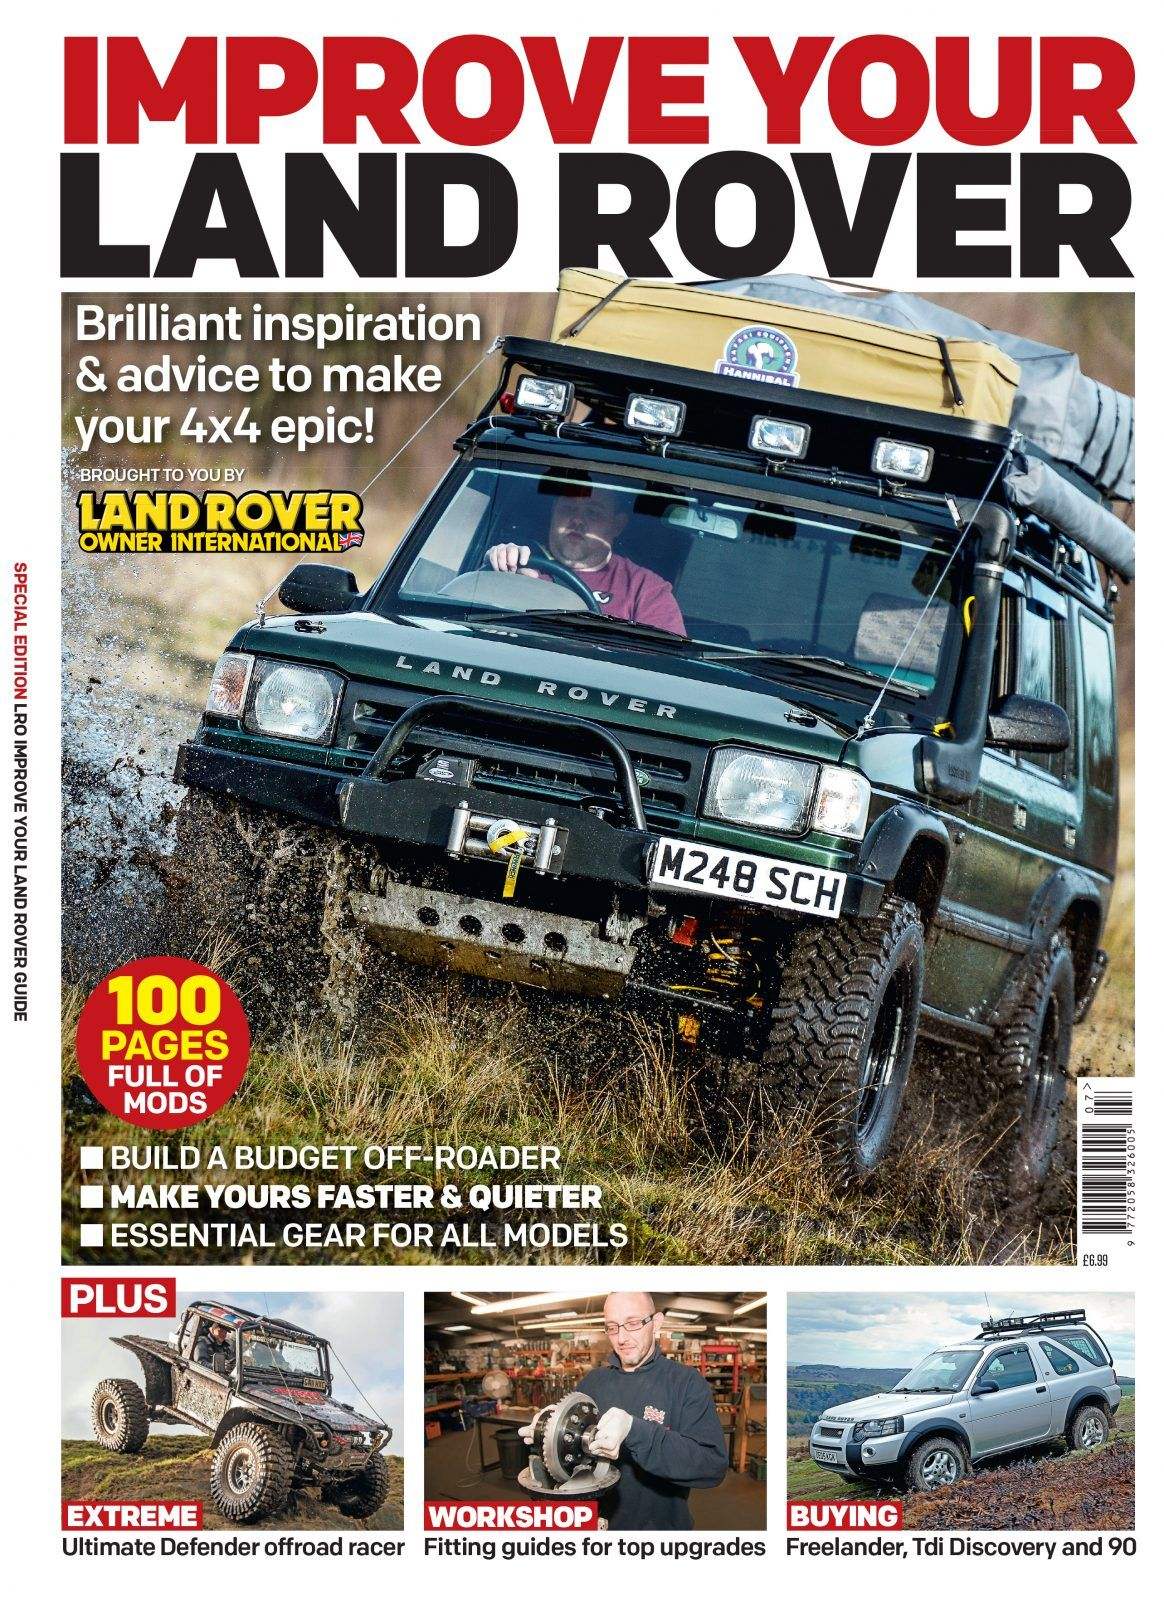 This Special Edition is packed with brilliant inspiration to make your 4x4 epic! Brought to you by Land Rover Owner magazine, the worlds biggest selling Land Rover mag  100 pages full of mods! Build a budget off-roader, make yours faster and quieter, essential gear for all models!  Plus: Extreme - the eltimate defender off roader; Workshop - fitting guides for top upgrades; Buying - freelander, TDi Discovery and 90